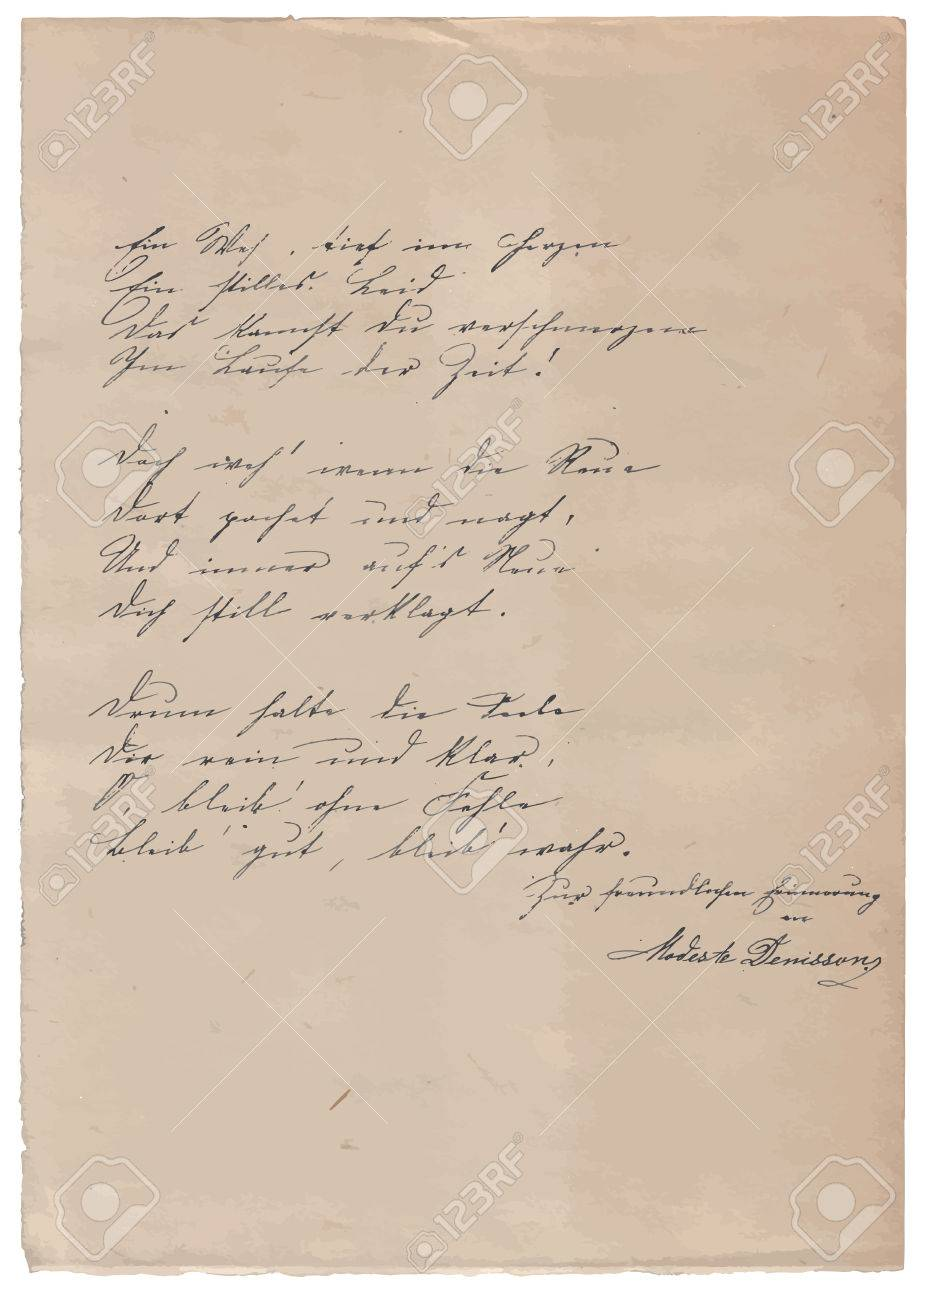 hand written poem on old paper background royalty cliparts hand written poem on old paper background stock vector 44118757